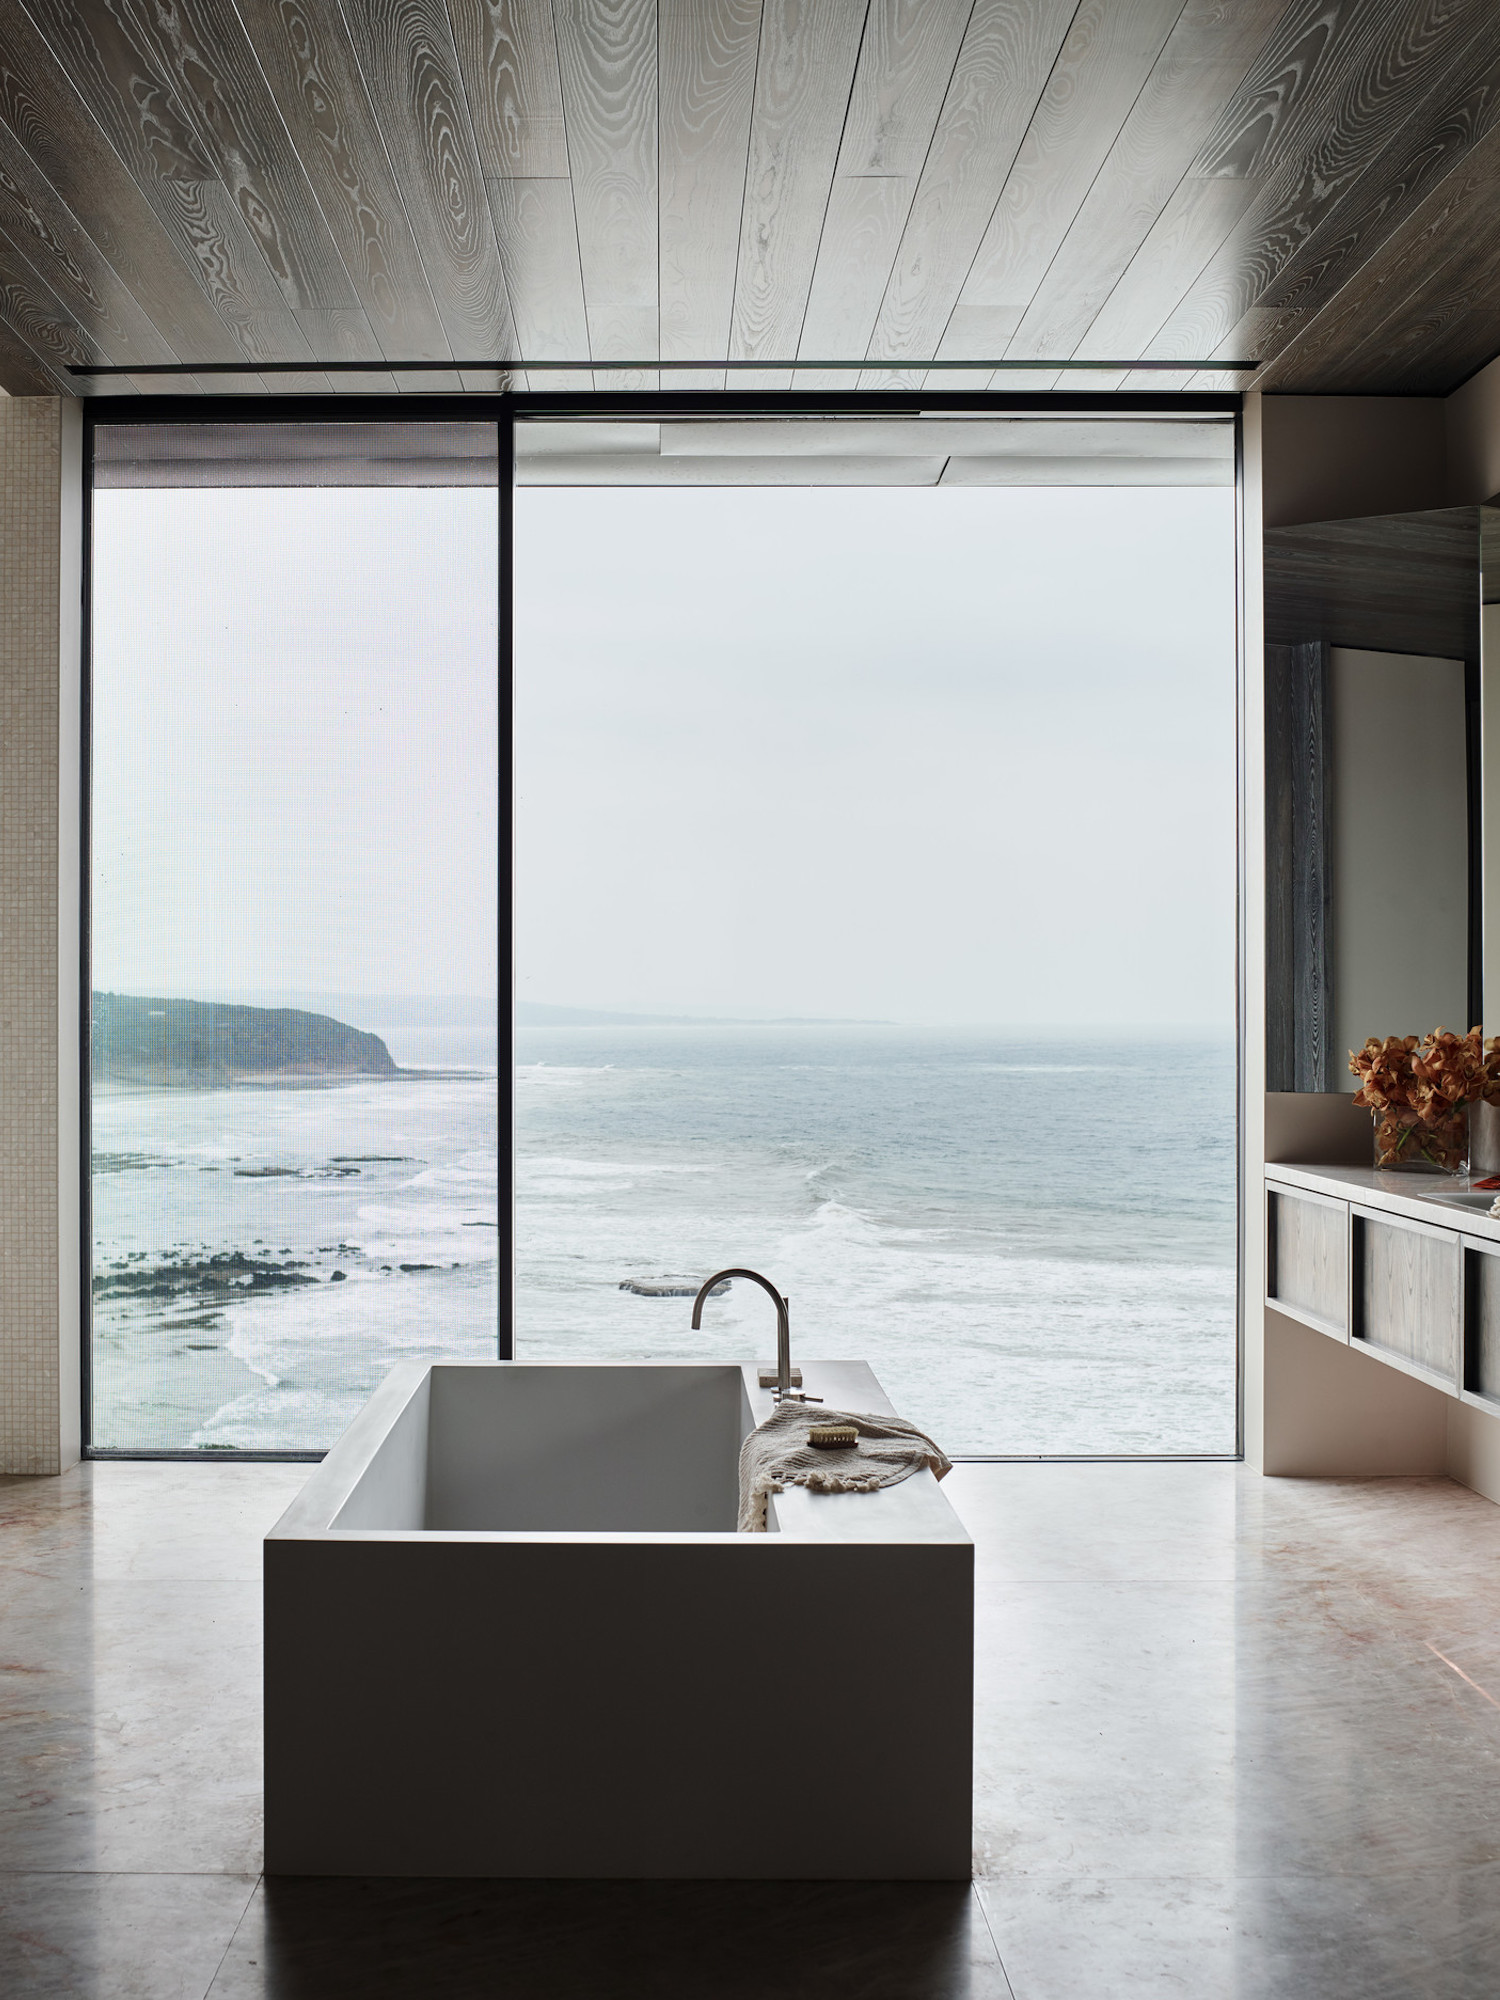 est living aida awards 2020 residential design great ocean road rob mills architecture interiors 2